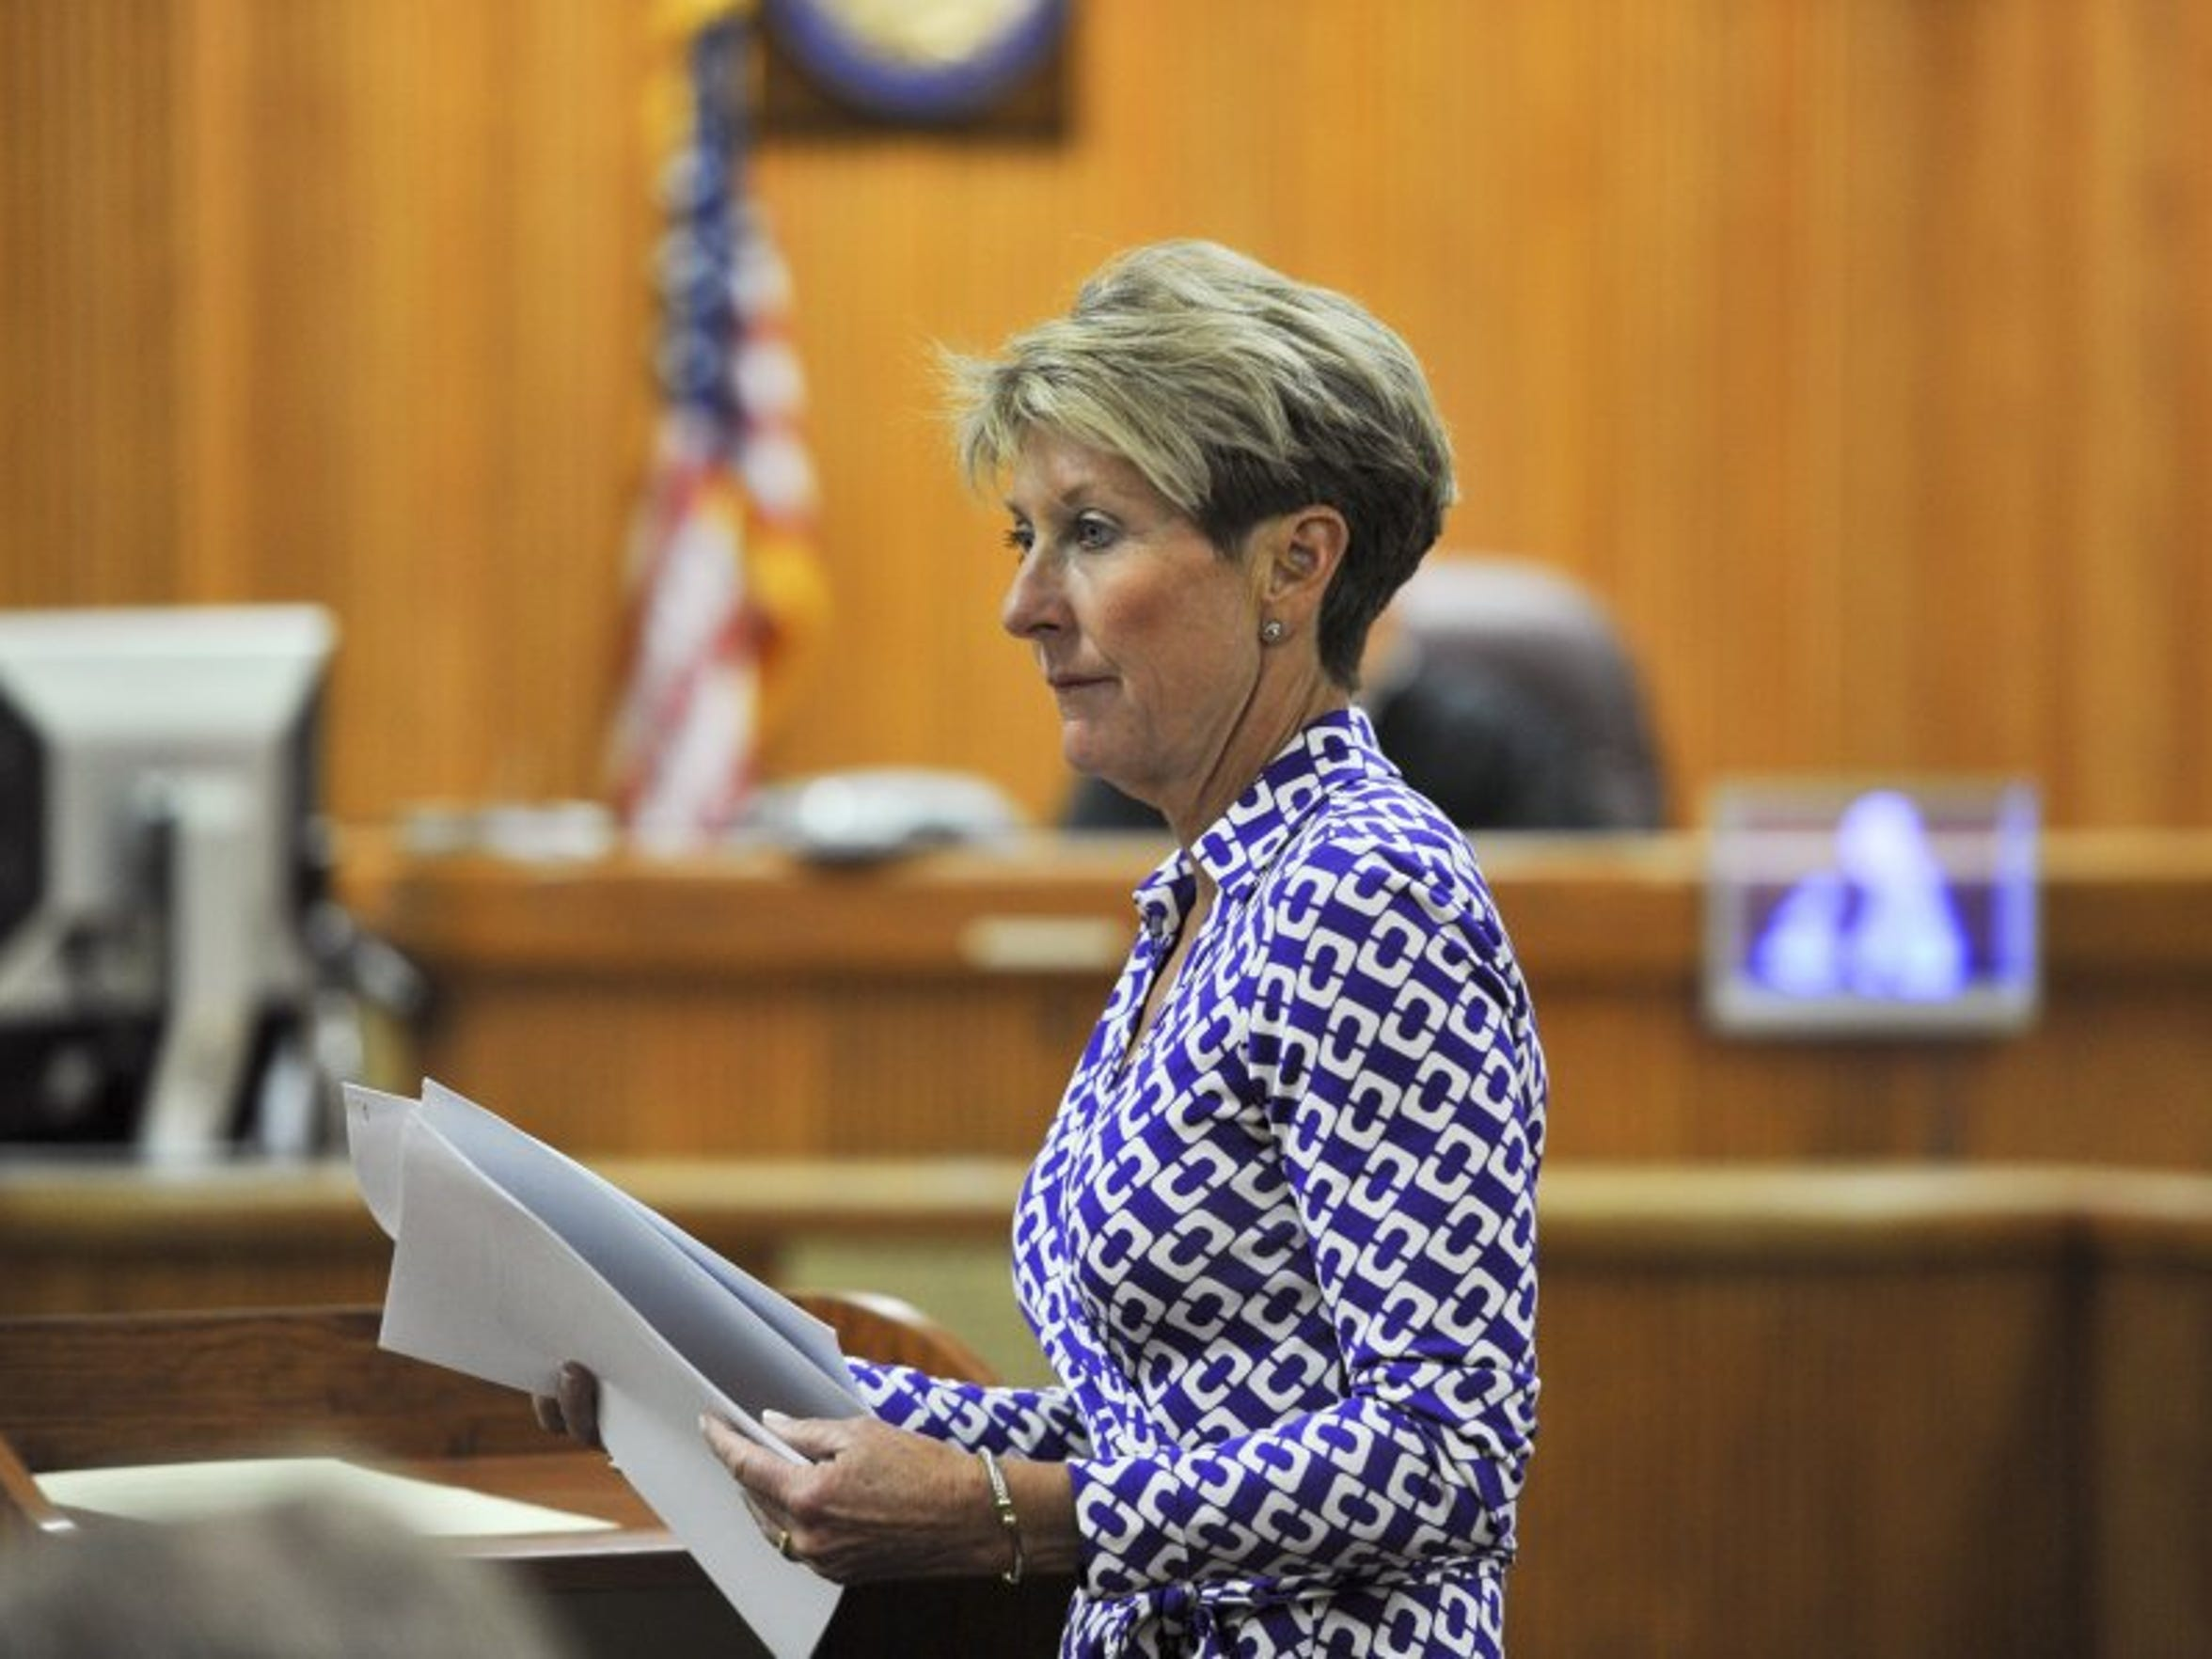 Public Defender Diamond Litty argues a motion in court March 11, 2014, during the second day of Tyler Hadley's sentencing hearing at the St. Lucie County Courthouse in Fort Pierce. (FILE PHOTO)